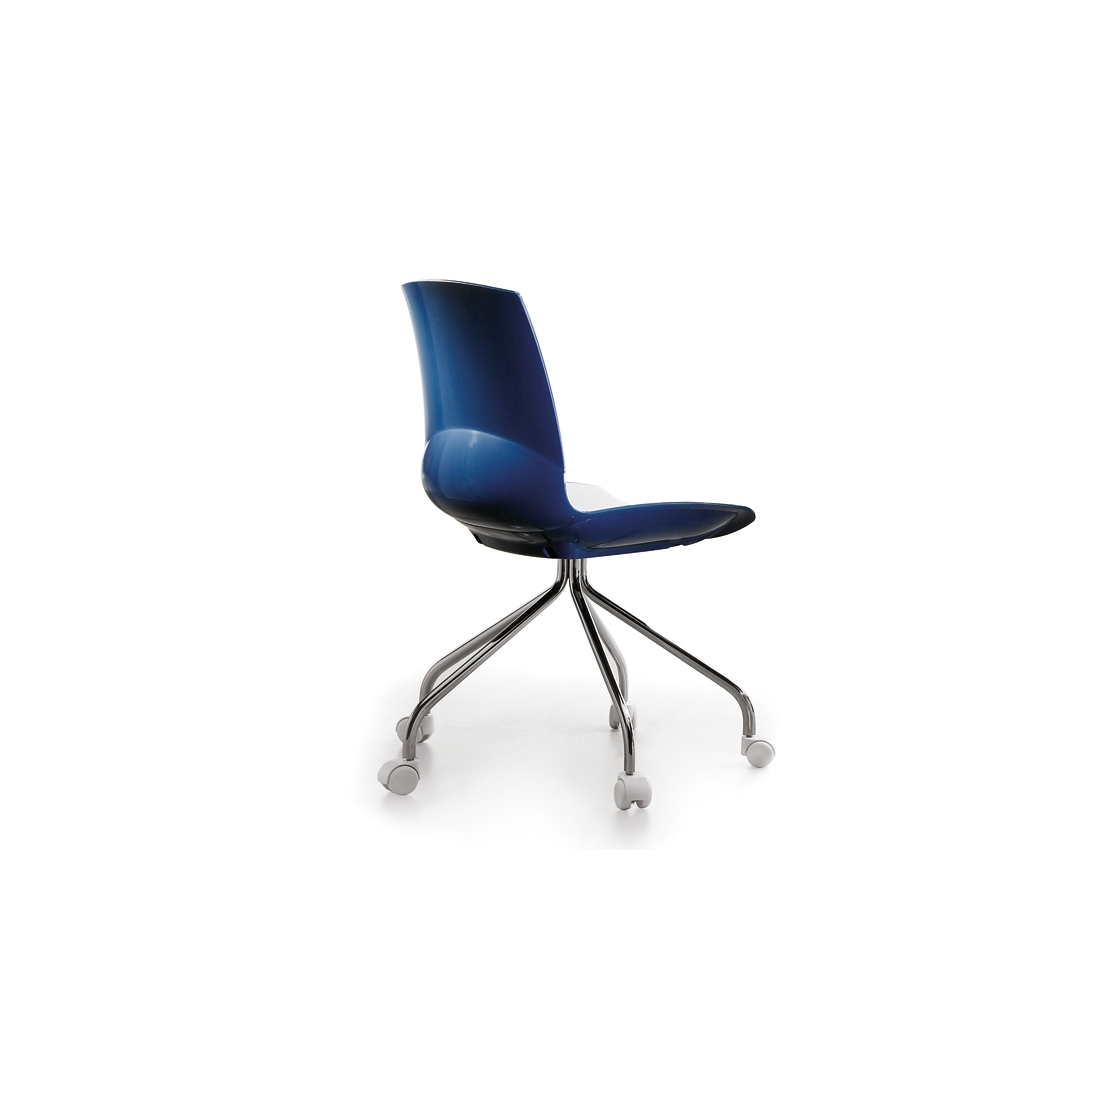 Chaise de bureau design infiniti now swivel chaises design for Chaise de bureau design